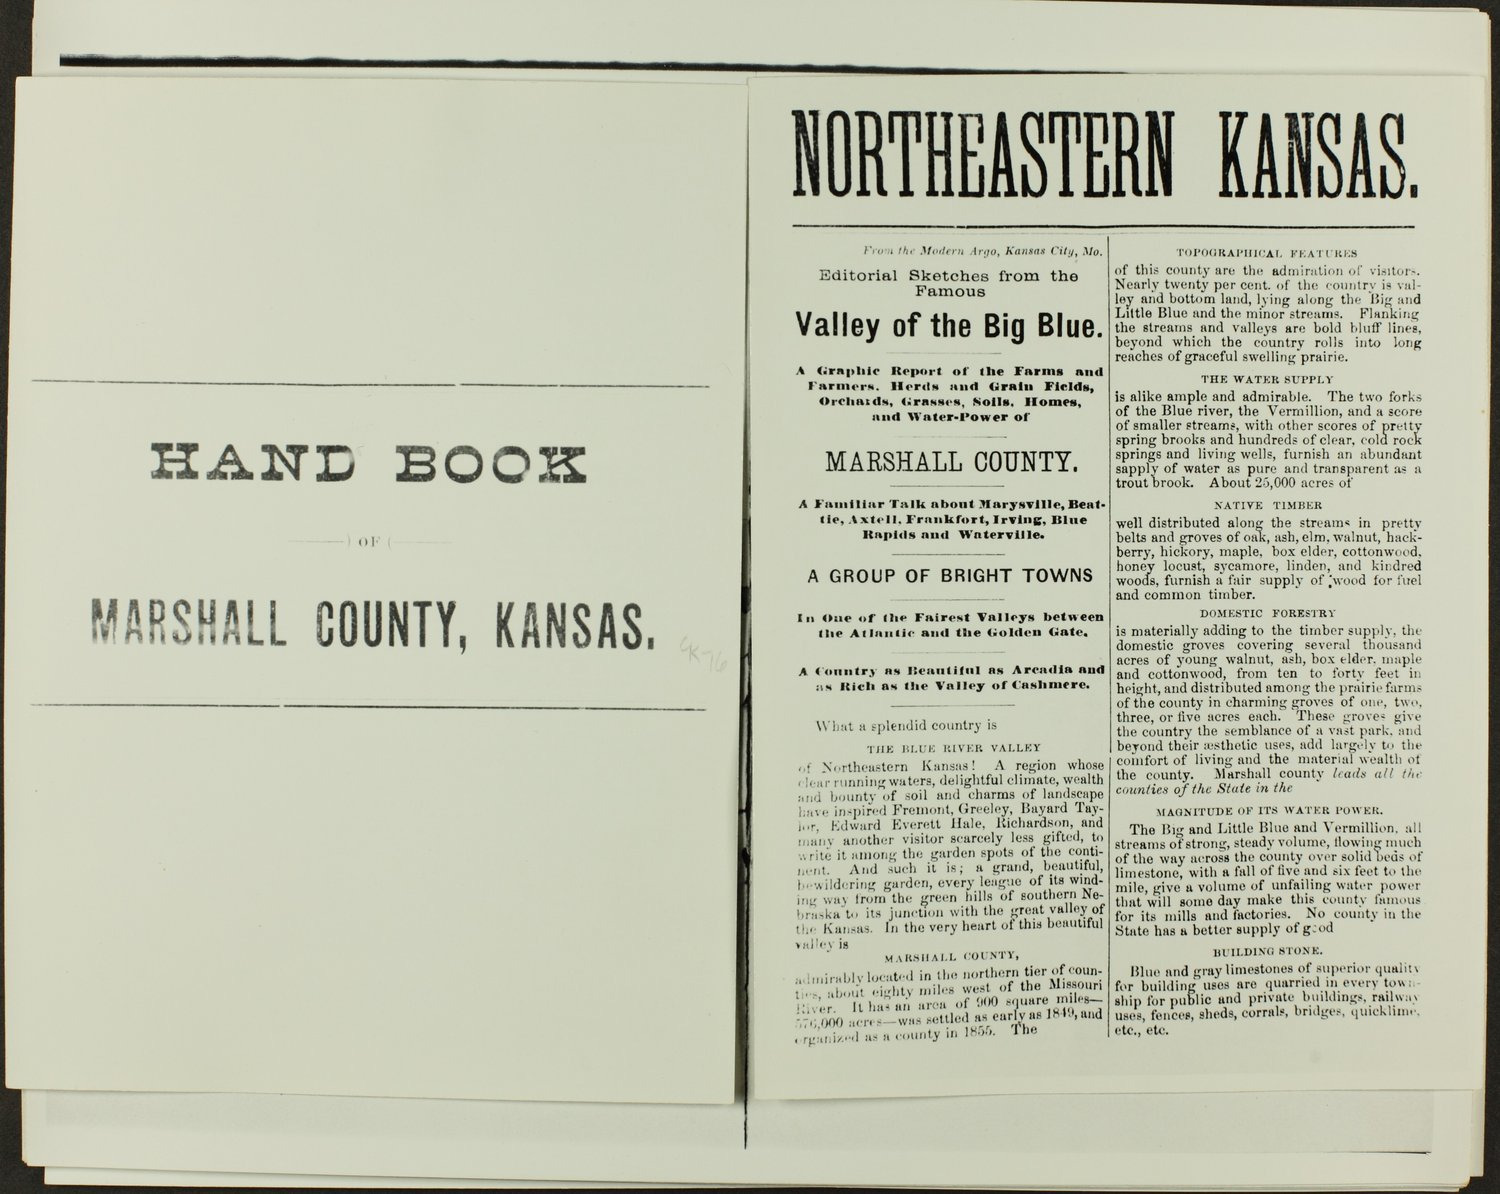 Handbook of Marshall County, Kansas - Title Page and Page 1